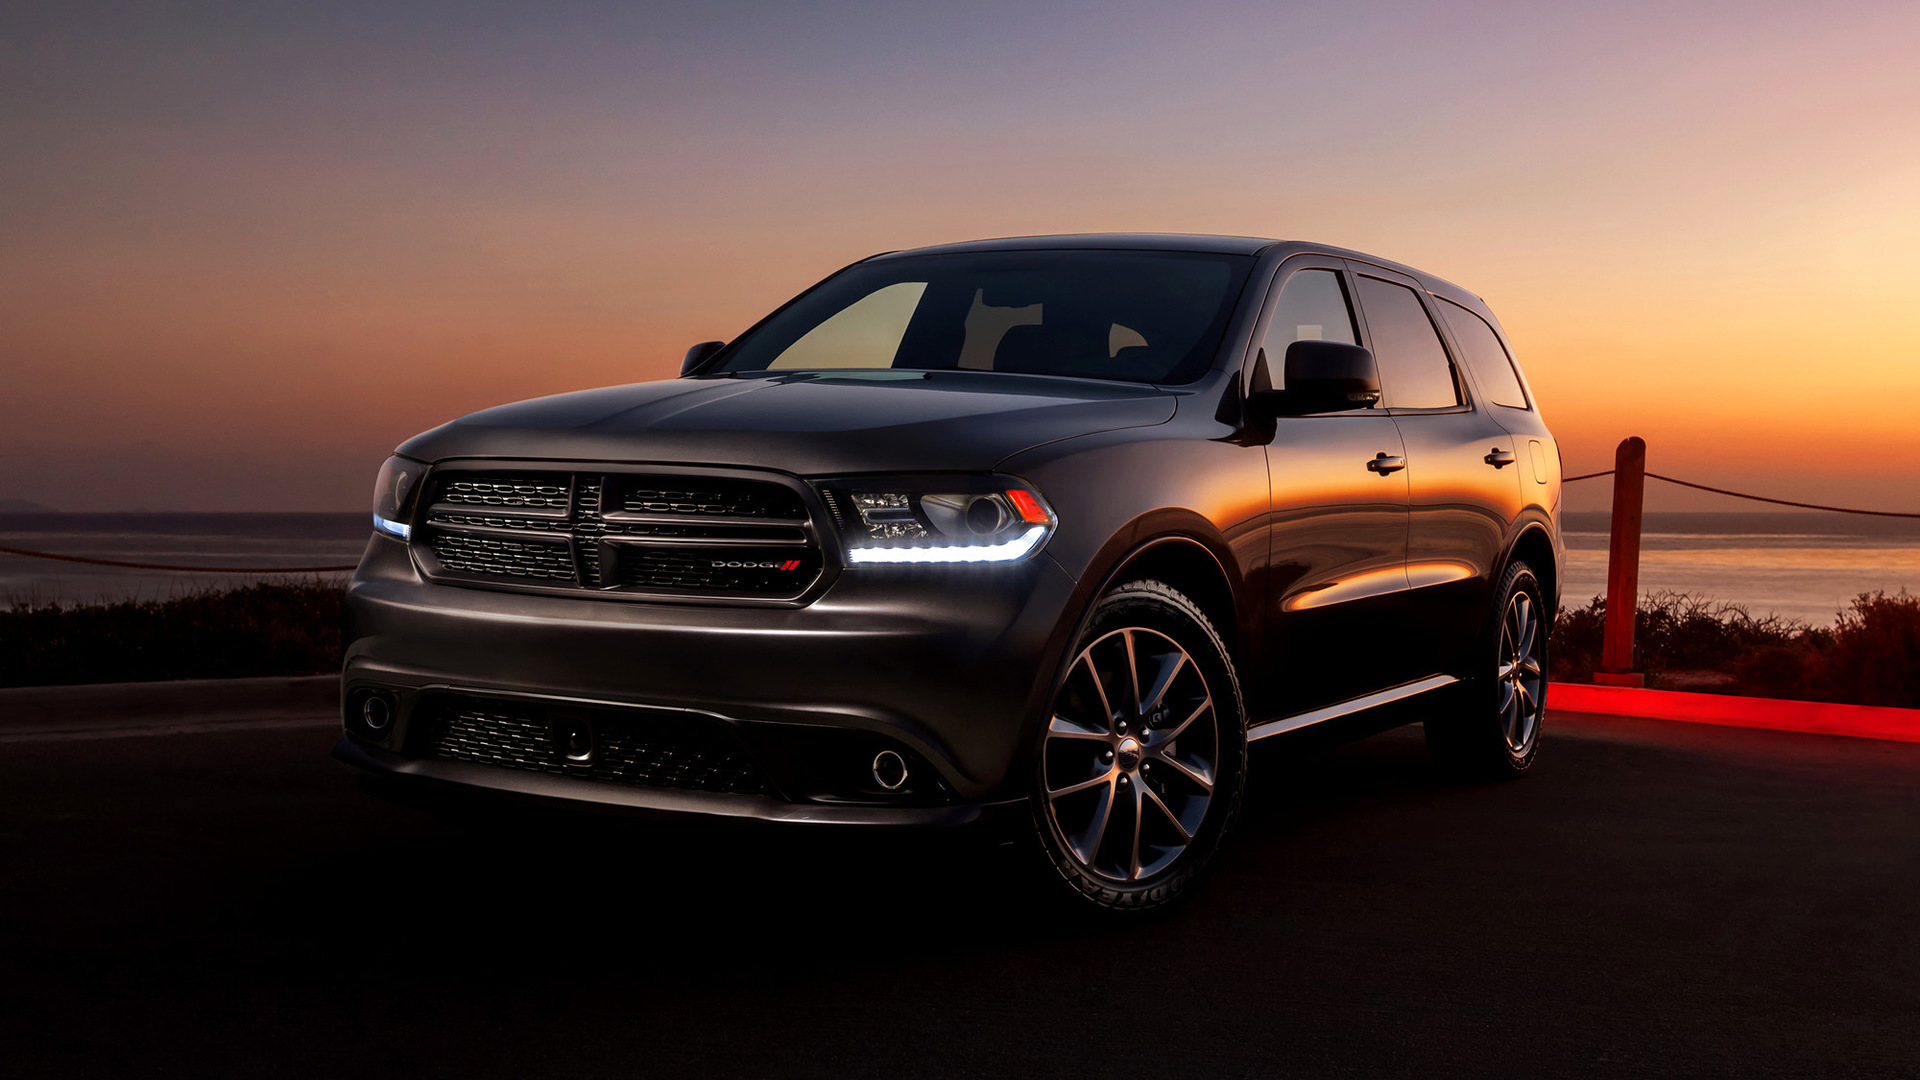 2013 Dodge Durango R/T - Wallpapers and HD Images | Car Pixel